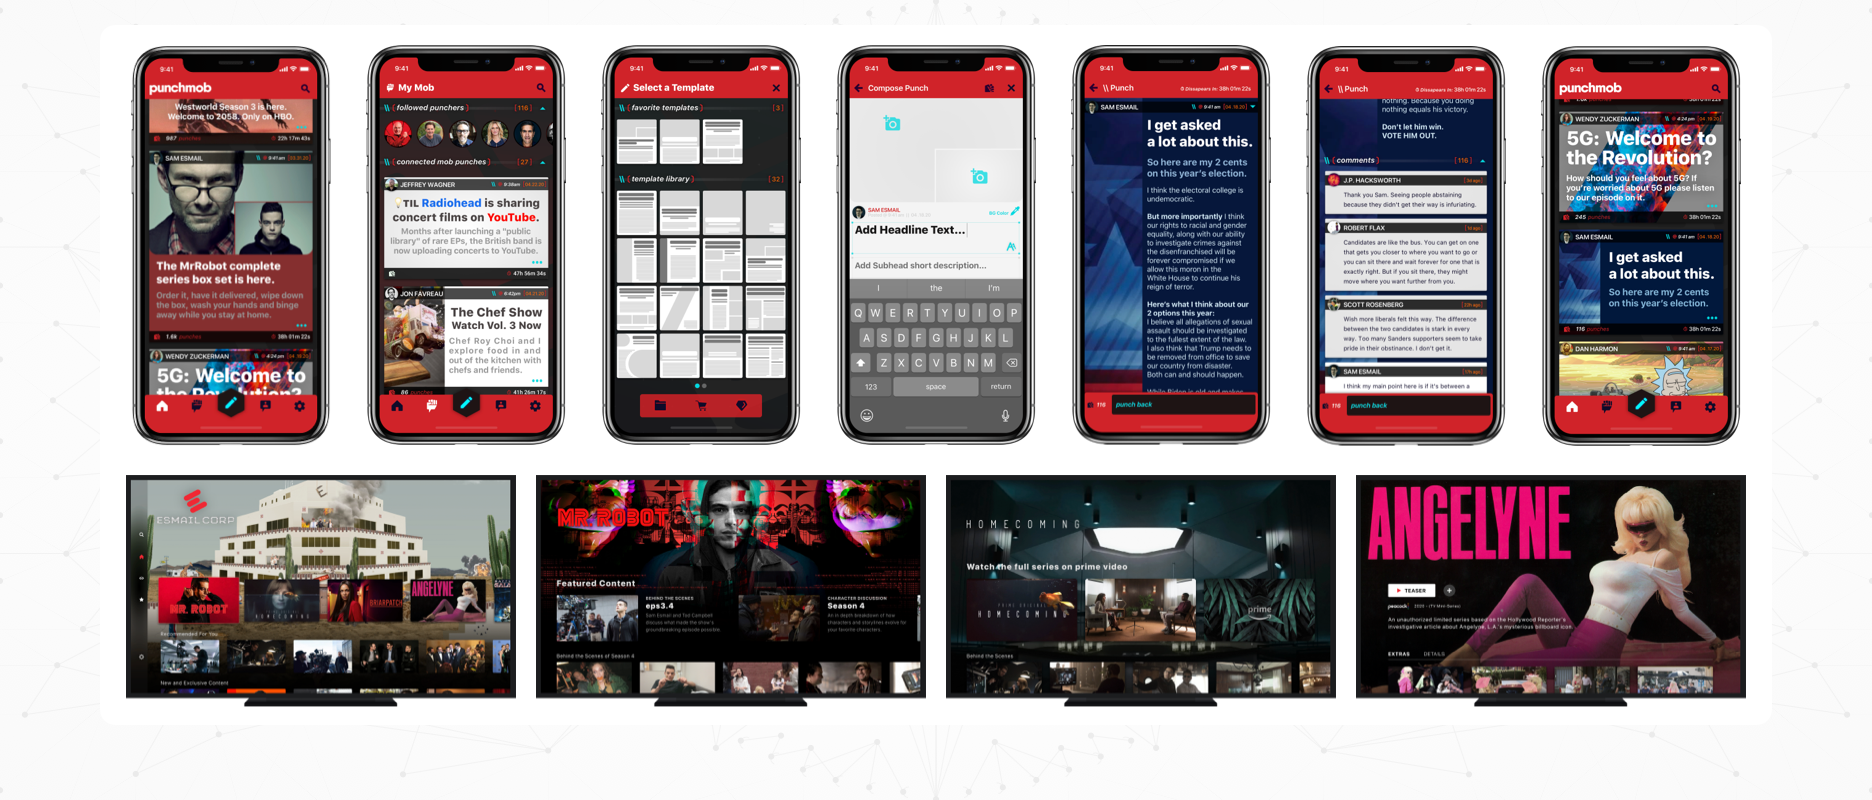 Punchmob - Case Study Image - Innovation Concepts